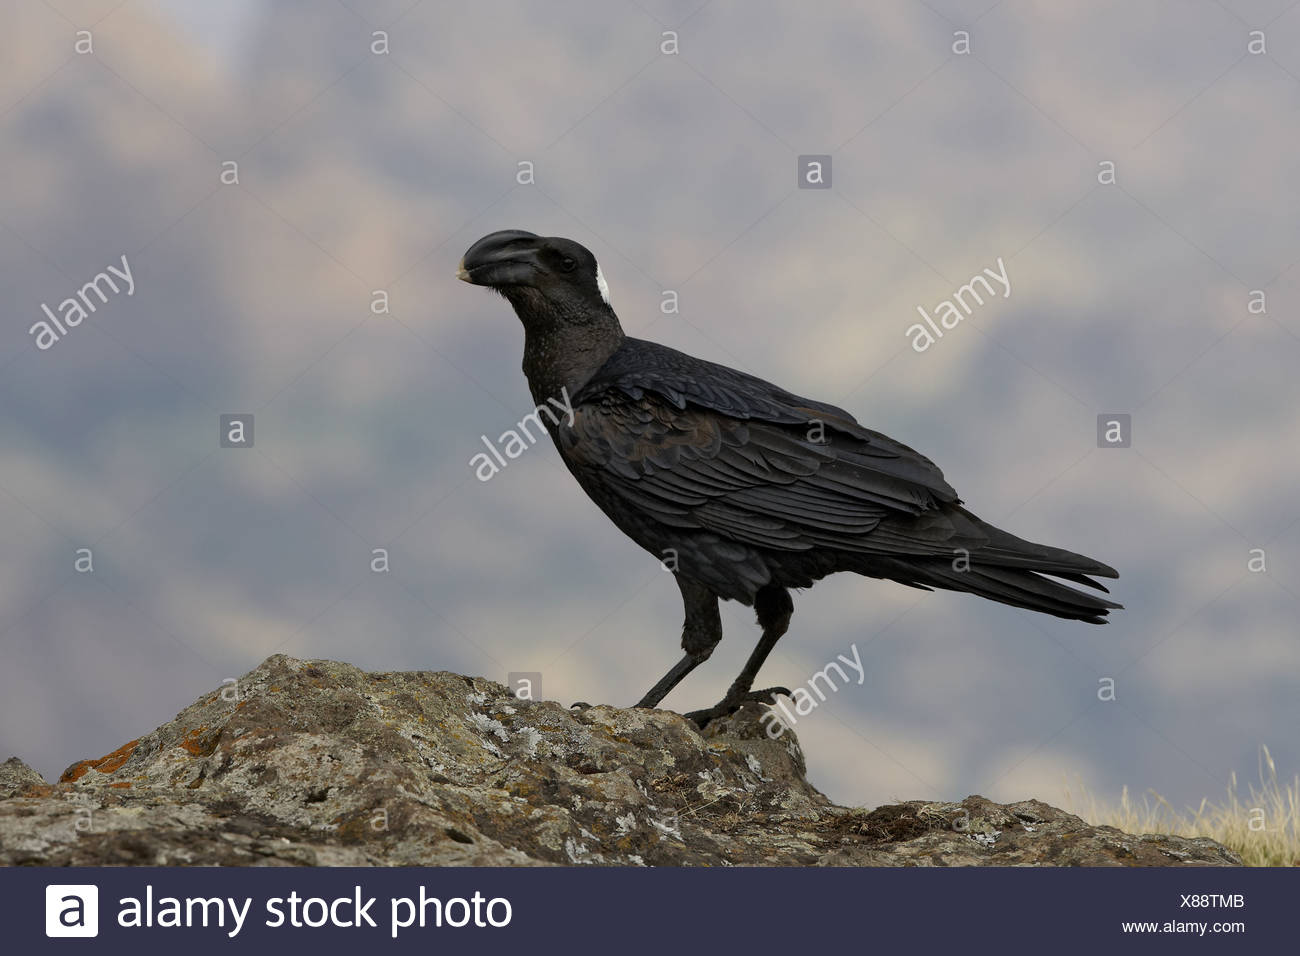 Thick-billed Raven (Corvus crassirostris) adult, standing on rock, Simien Mountains, Ethiopia - Stock Image